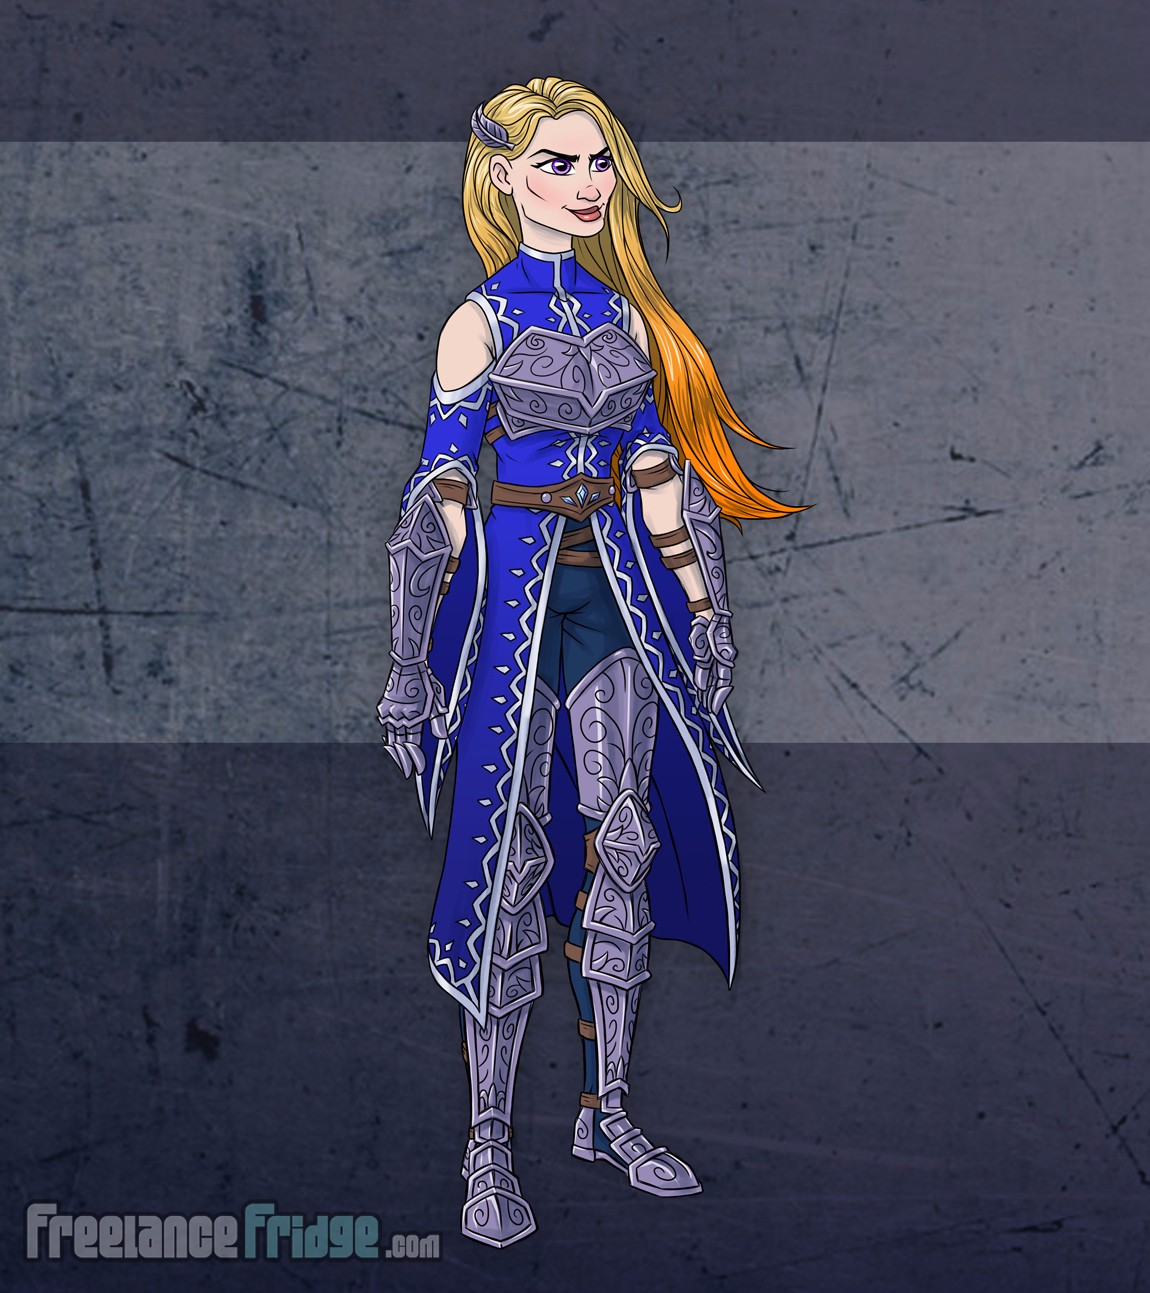 Female Warrior Knight Woman wearing armor cloak color character concept artwork three quarters 3/4 view for video game